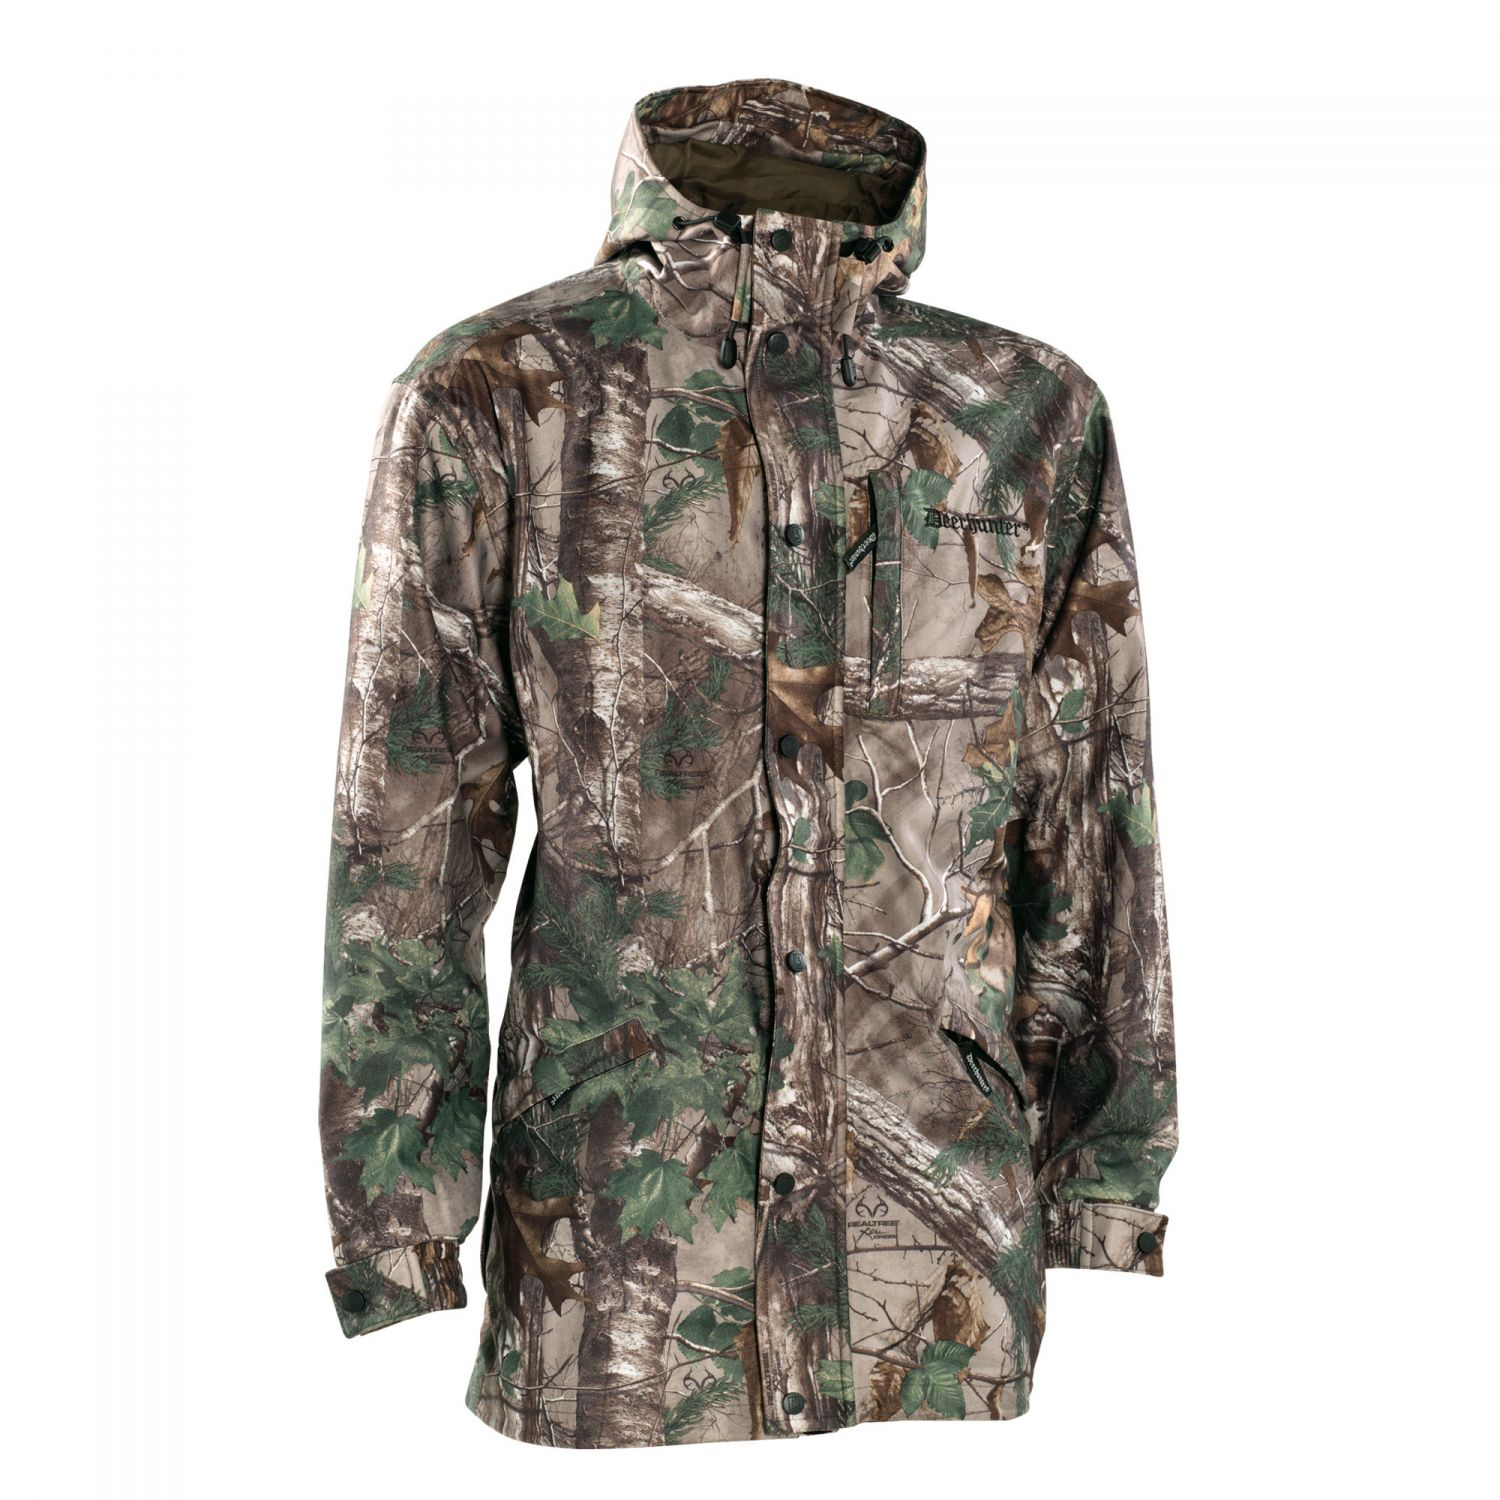 7dcb7aa765c82 Deerhunter Avanti Fleece Jacket - Hadfield Guns